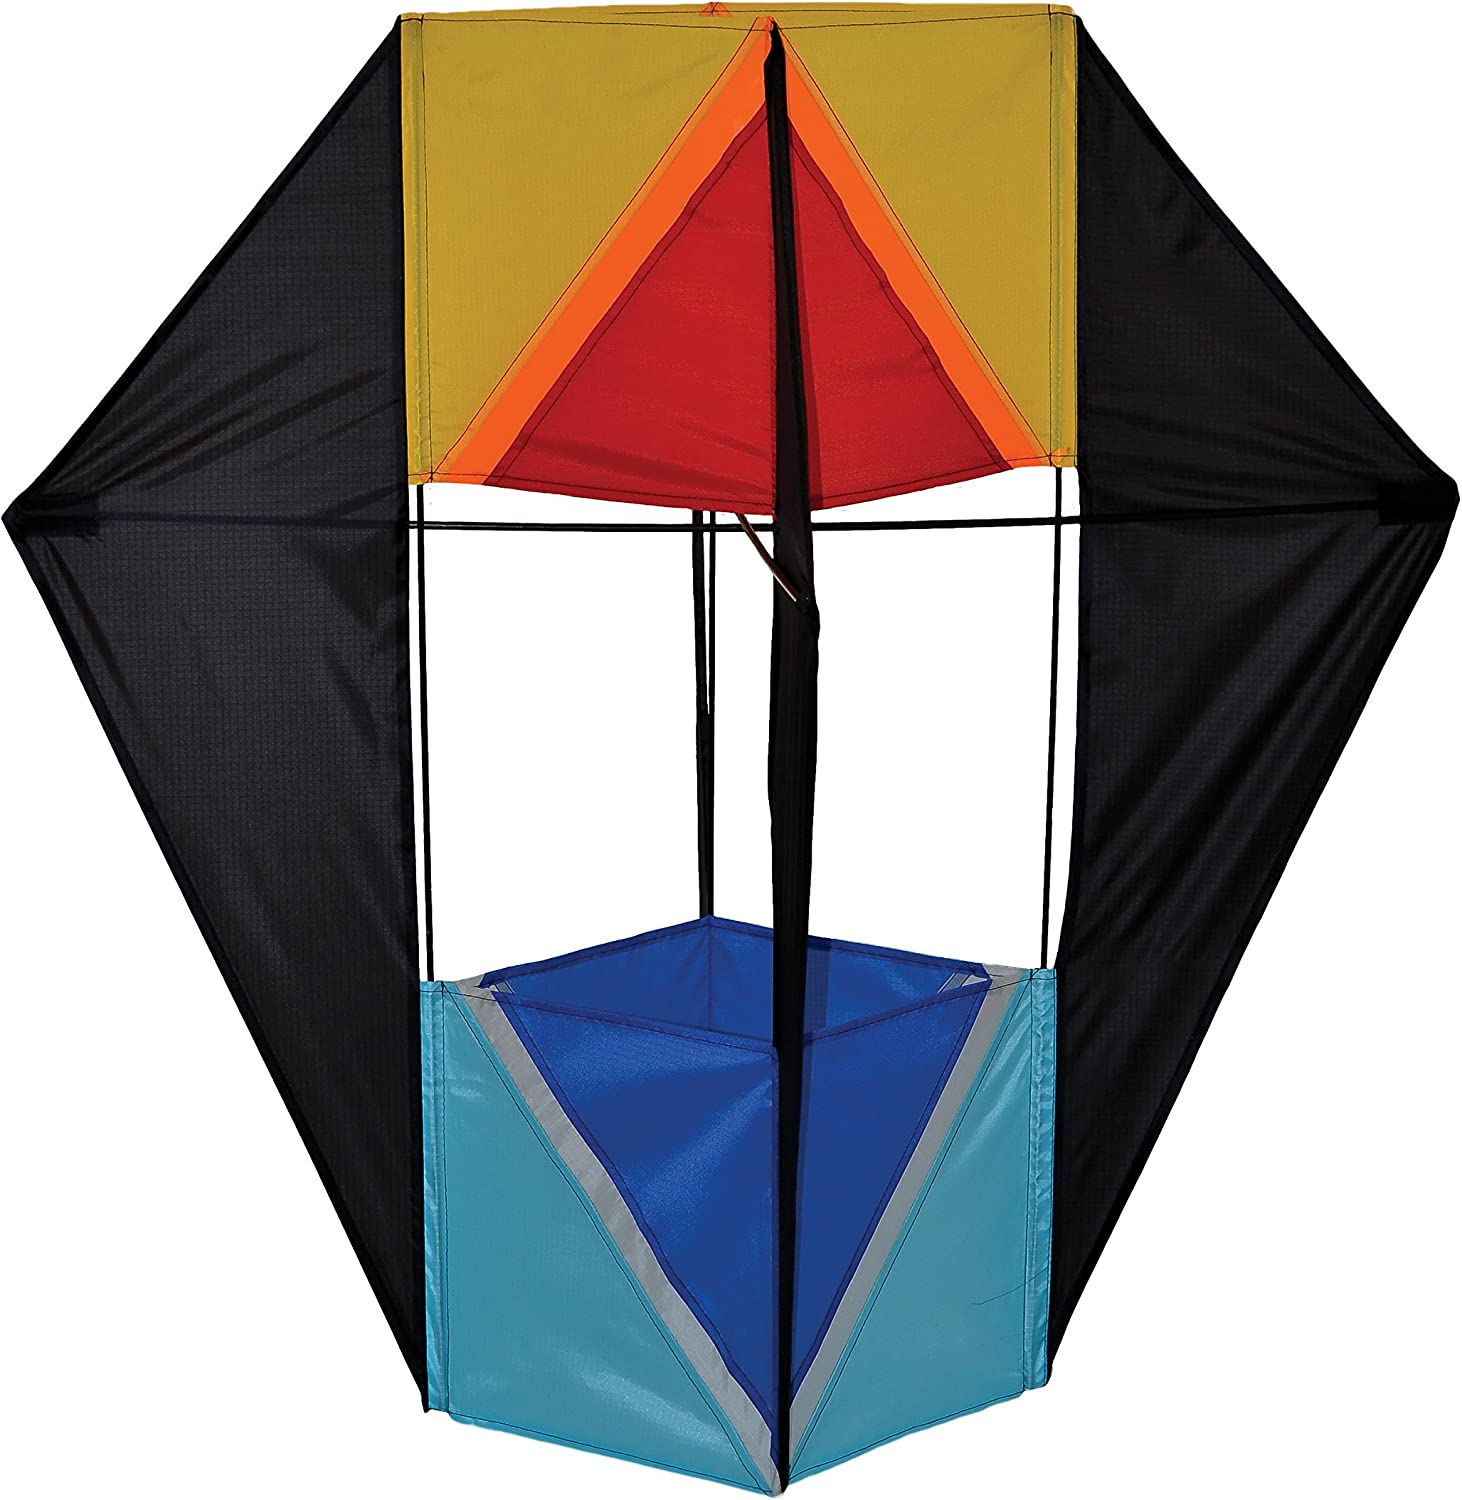 Be super welcome In the Breeze Hot Box Cool Kite Winged High quality